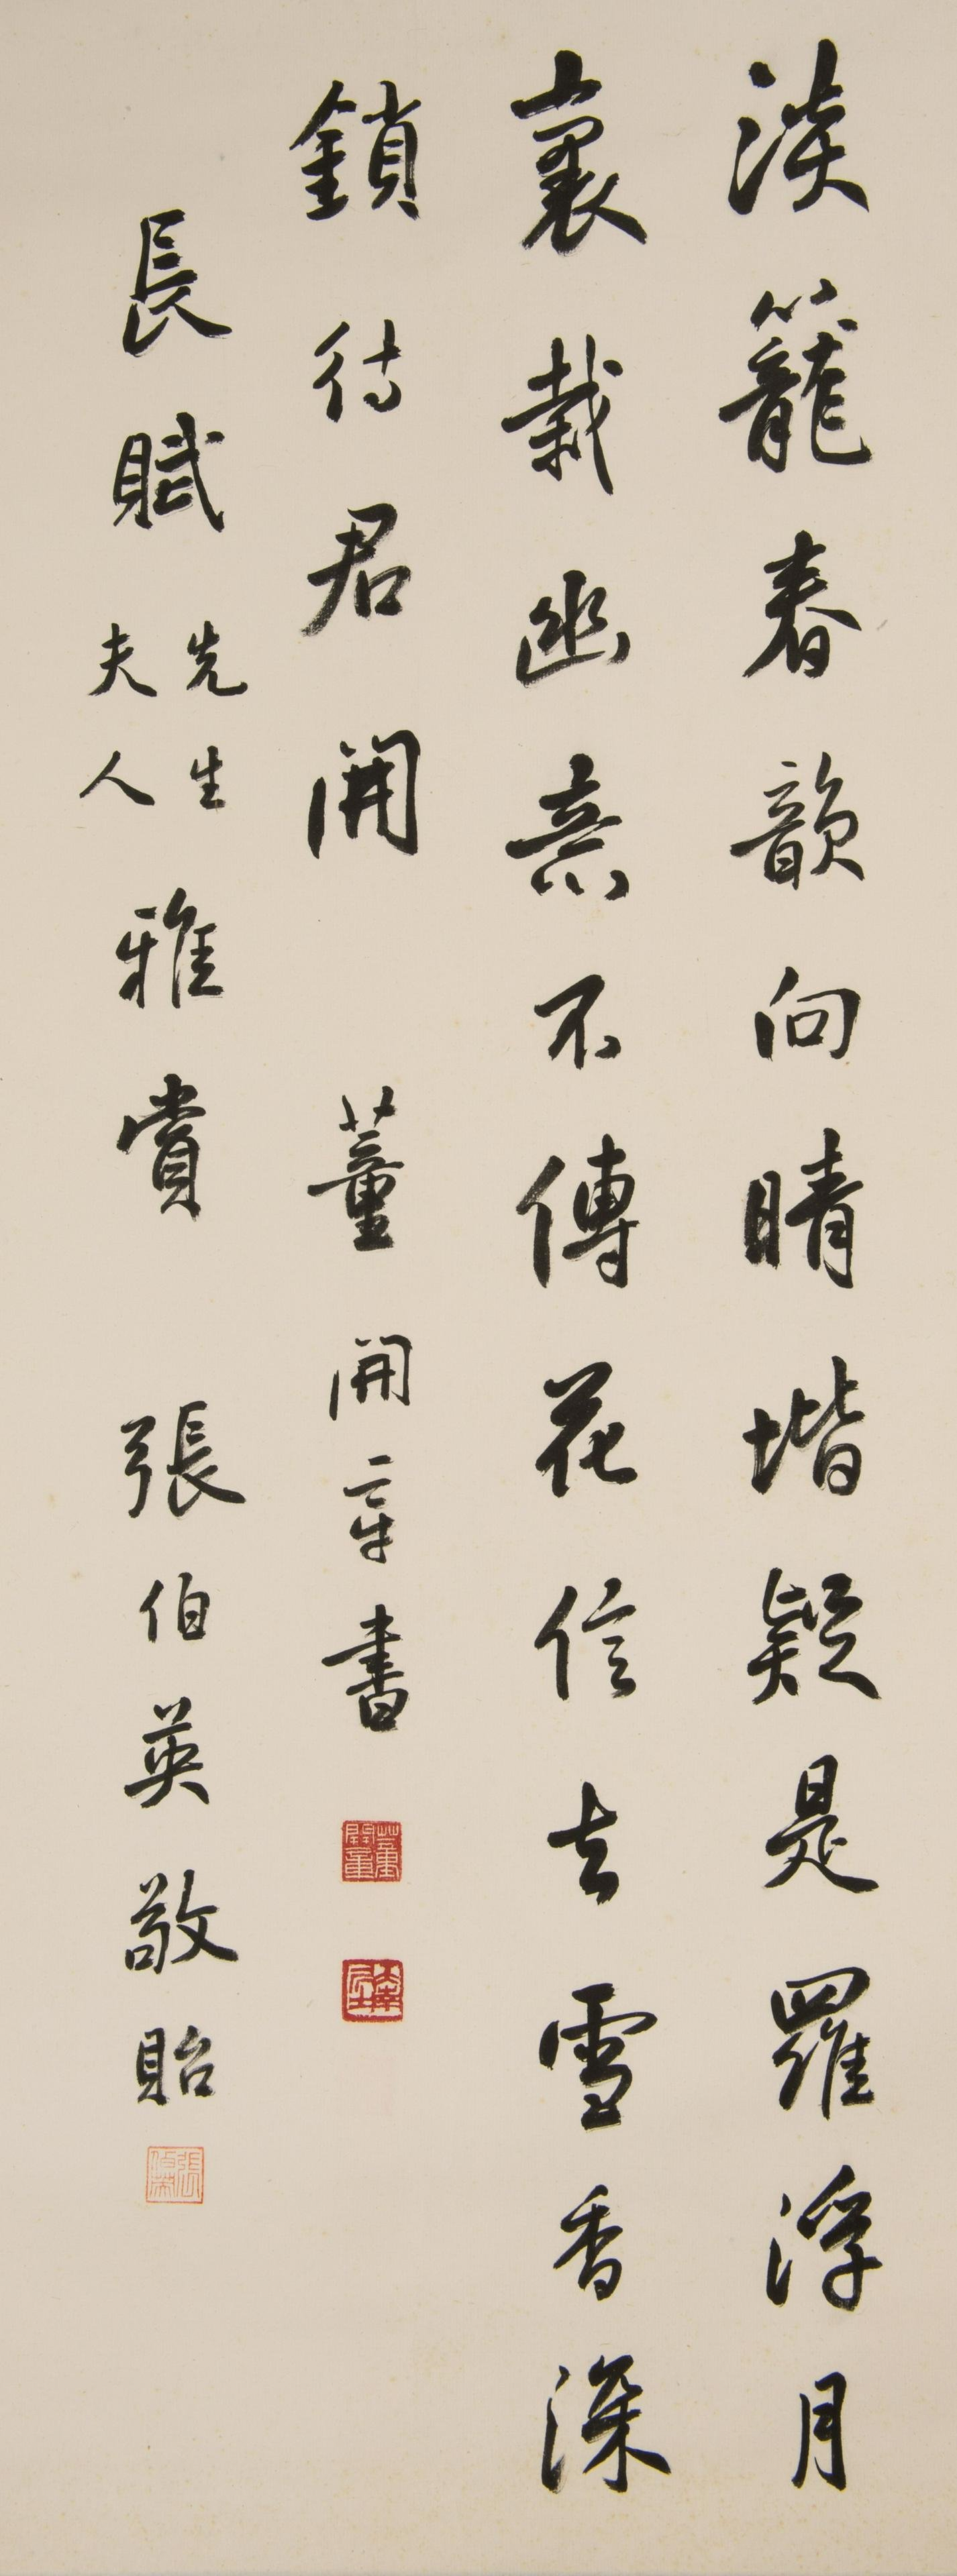 Calligraphy by Dong Kaizhang given to Changfu